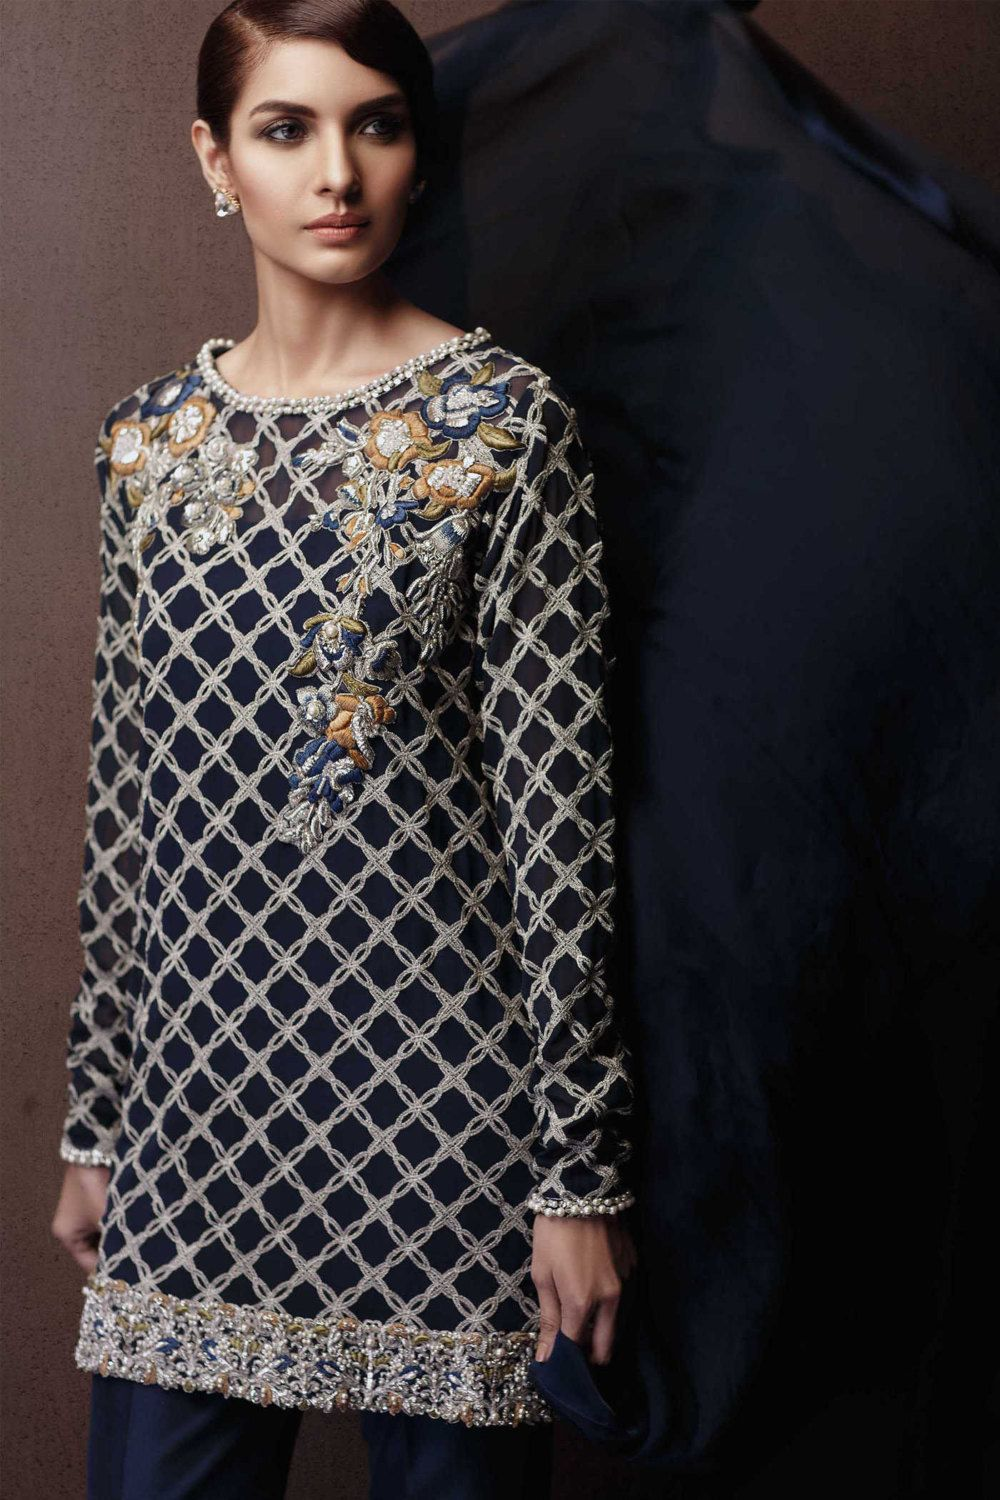 5881644f11d9 Pakistani Elan Crystal Festive Inspired Embroidered Shirt with ...